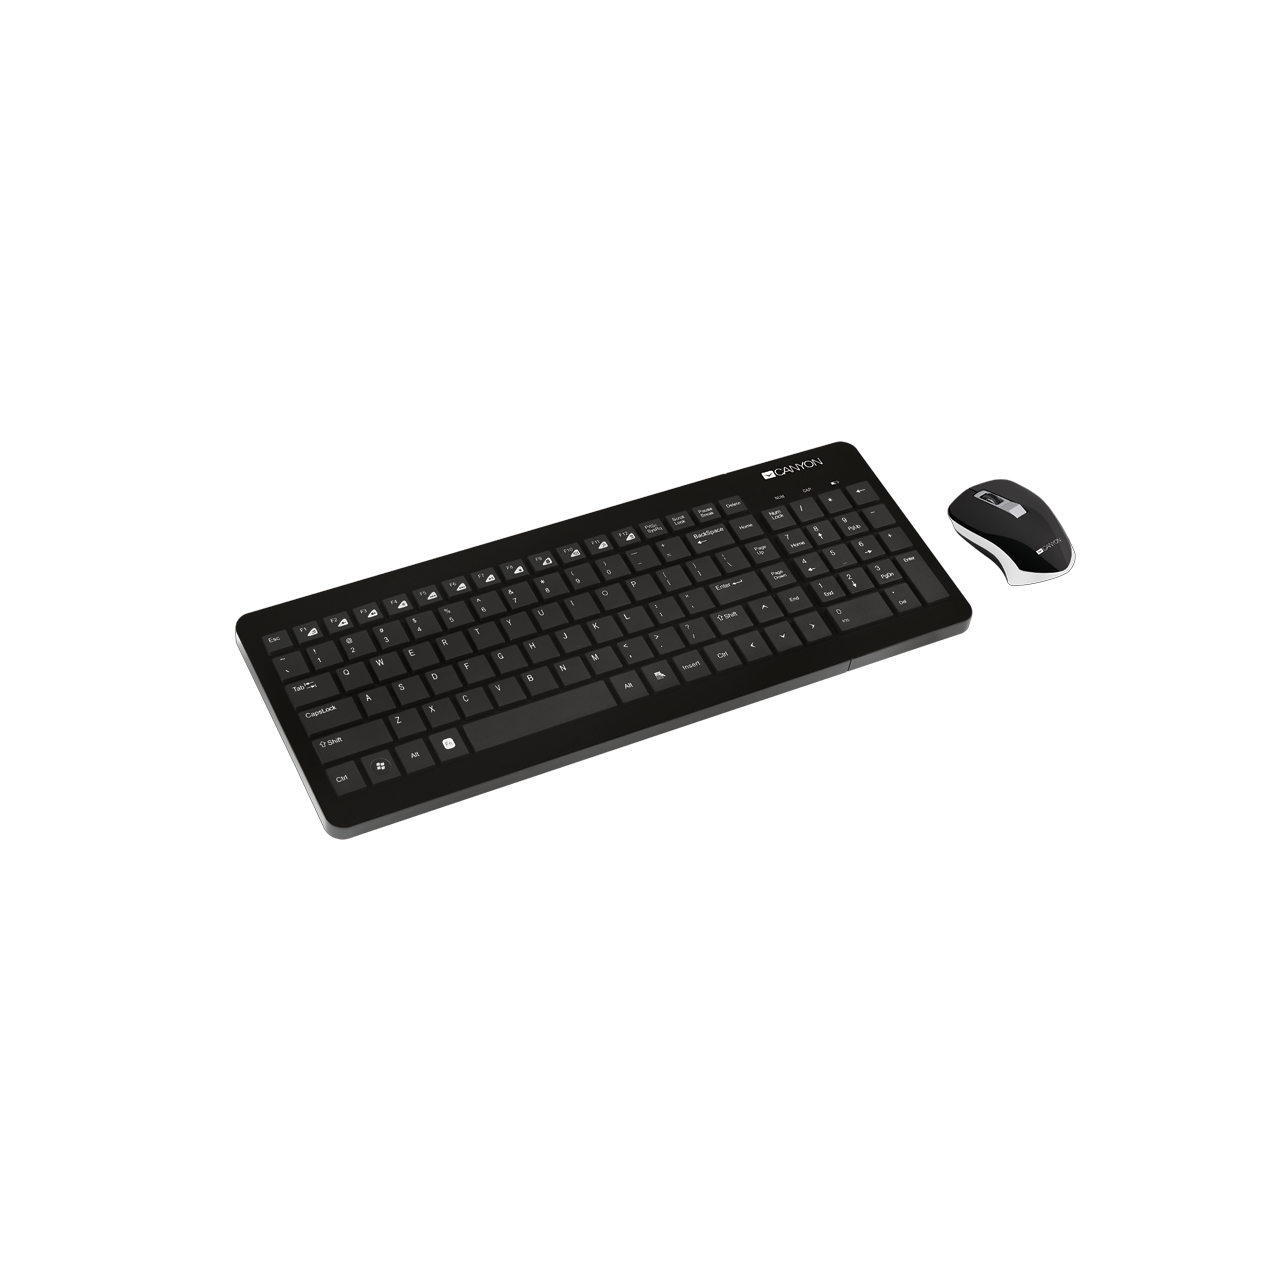 Stylish multimedia wireless keyboard and mouse set (CNS